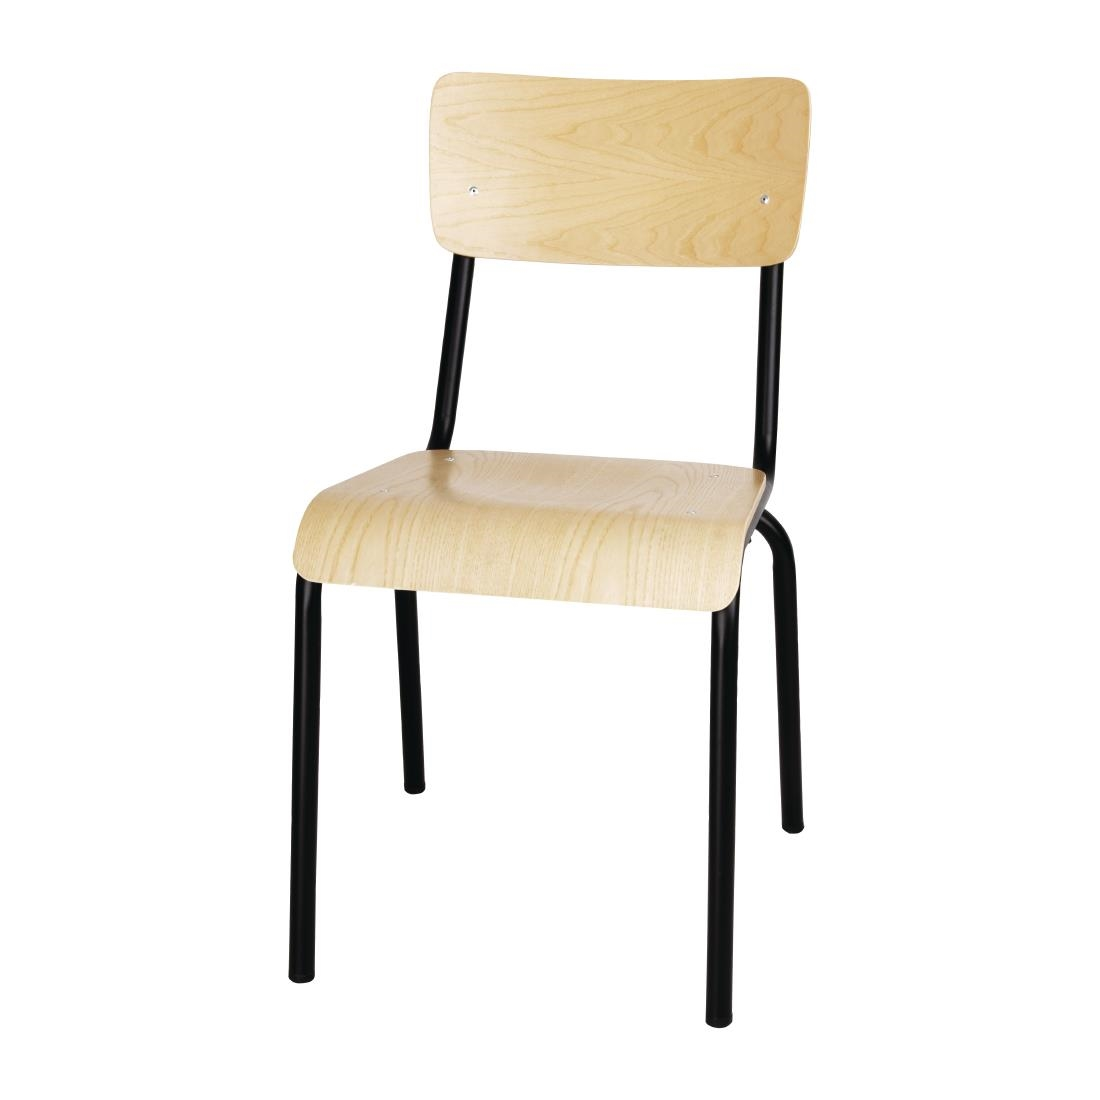 Image of Bolero Cantina Side Chairs with Wooden Seat Pad and Backrest Black (Pack of 4) Pack of 4